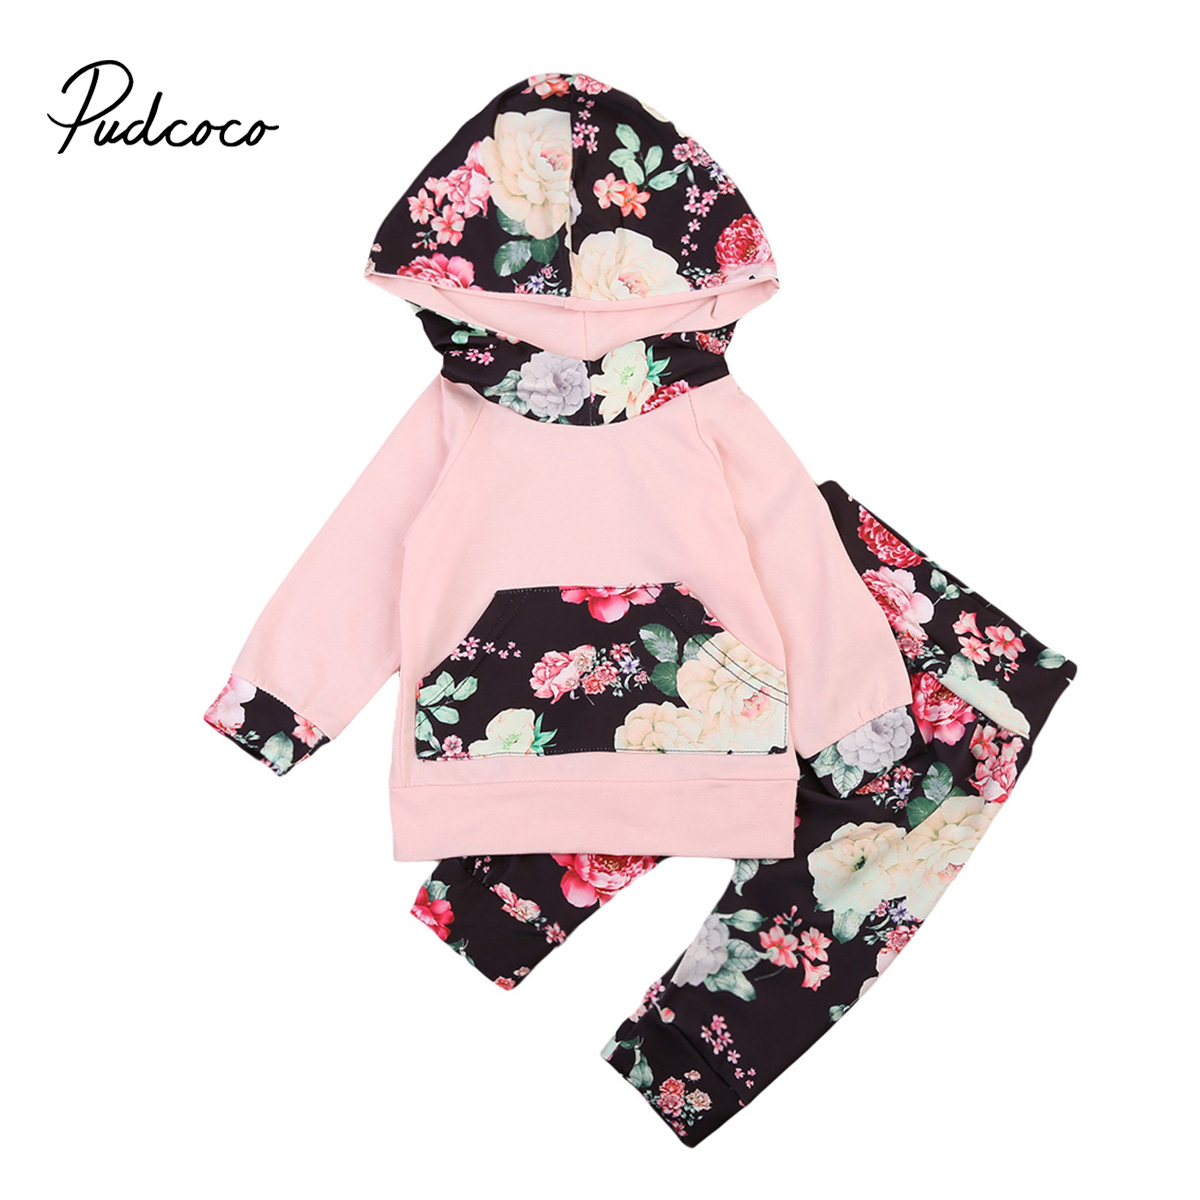 Pudcoco 2pcs Newborn Baby Girl Floral Hoodie Tops+Long Pants Leggings Baby Girls Autumn Winter Clothes Set Outfit infant newborn baby girls clothes set hooded tops long sleeve t shirt floral long leggings outfit children clothing autumn 2pcs